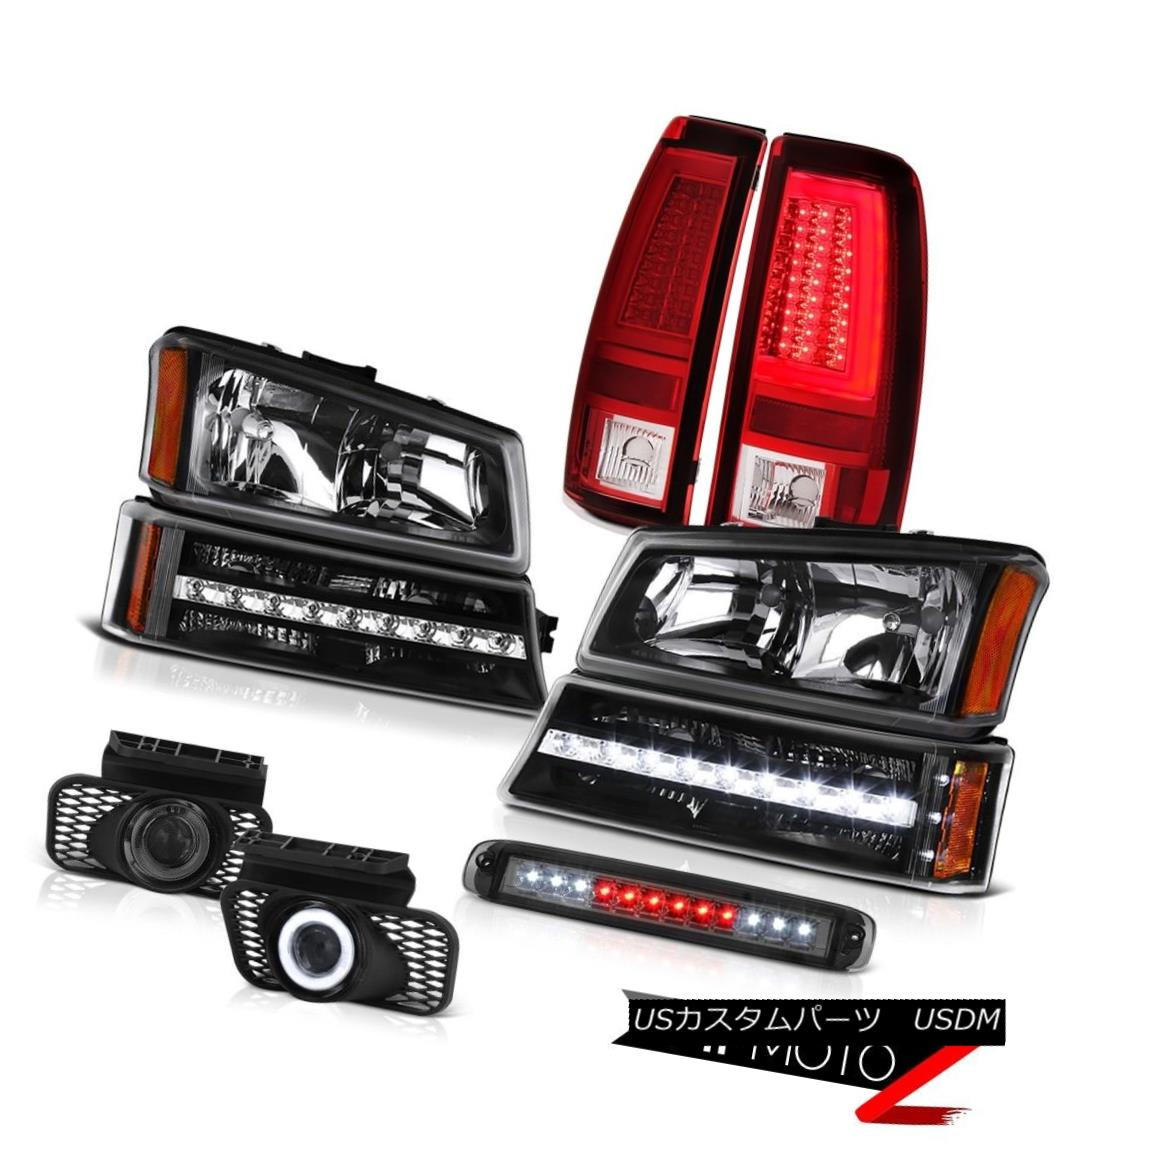 テールライト 03-06 Silverado Taillamps 3RD Brake Light Headlamps Fog Lamps Bumper Light Bar 03-06 Silverado Taillamps 3RDブレーキライトヘッドランプフォグランプバンパーライトバー